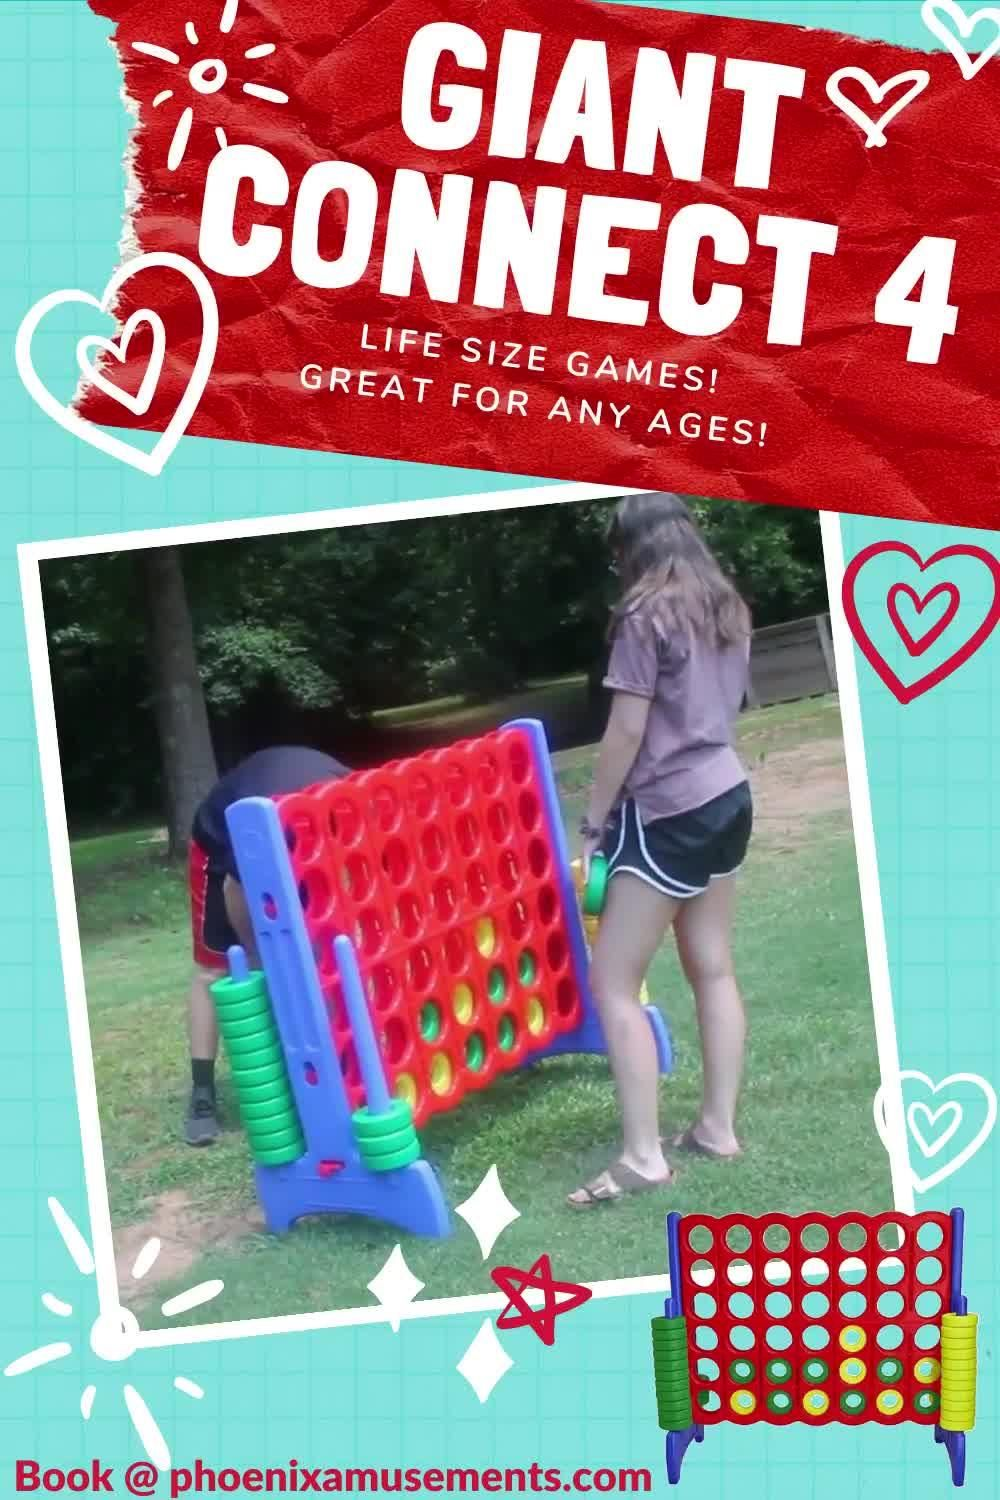 Giant Connect 4 - Life Size Games. Looking for Fun activities for indoor or outdoor parties? Easy but challenging! Line up 4 of your color discs to win. Have you played lately? #partyplanners #eventideas #funactivities #fungames #eventinspiration #corporateevents #eventservices #eventprofs #eventplanning #eventplanner #PhoenixAmusements